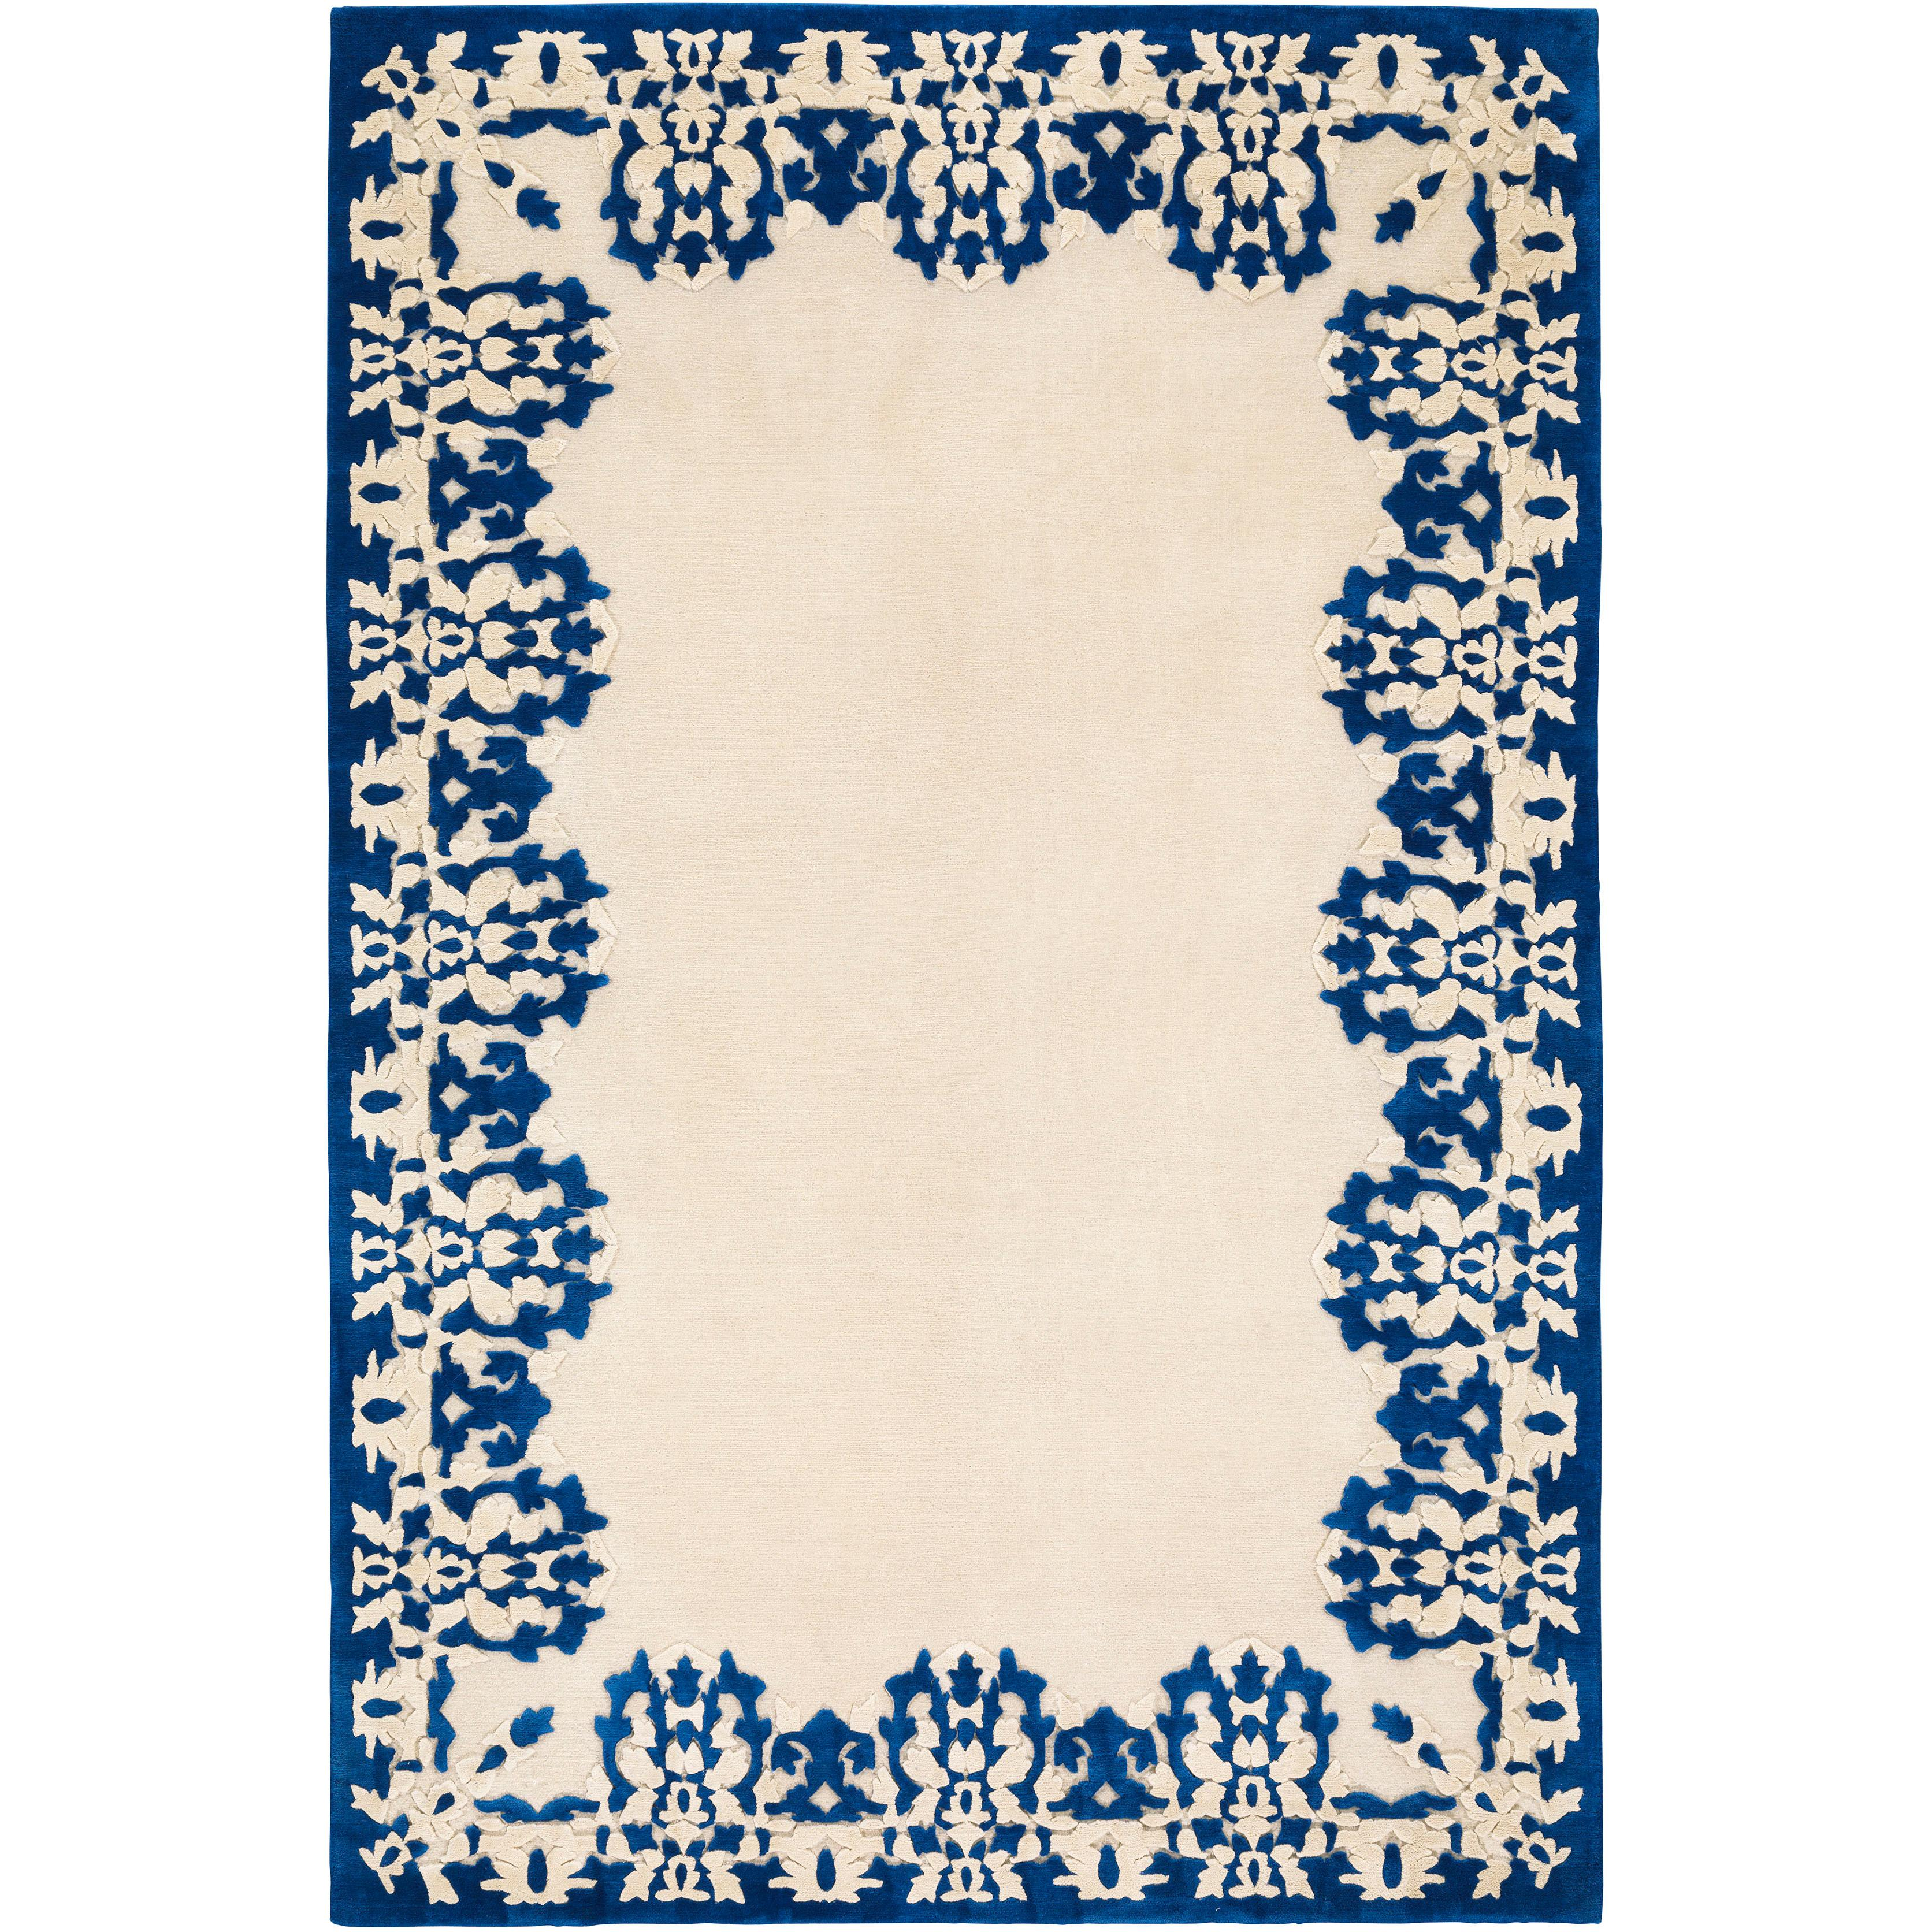 Cobalt Hand-Knotted 10x8 Rug in Wool and Silk by Rodarte